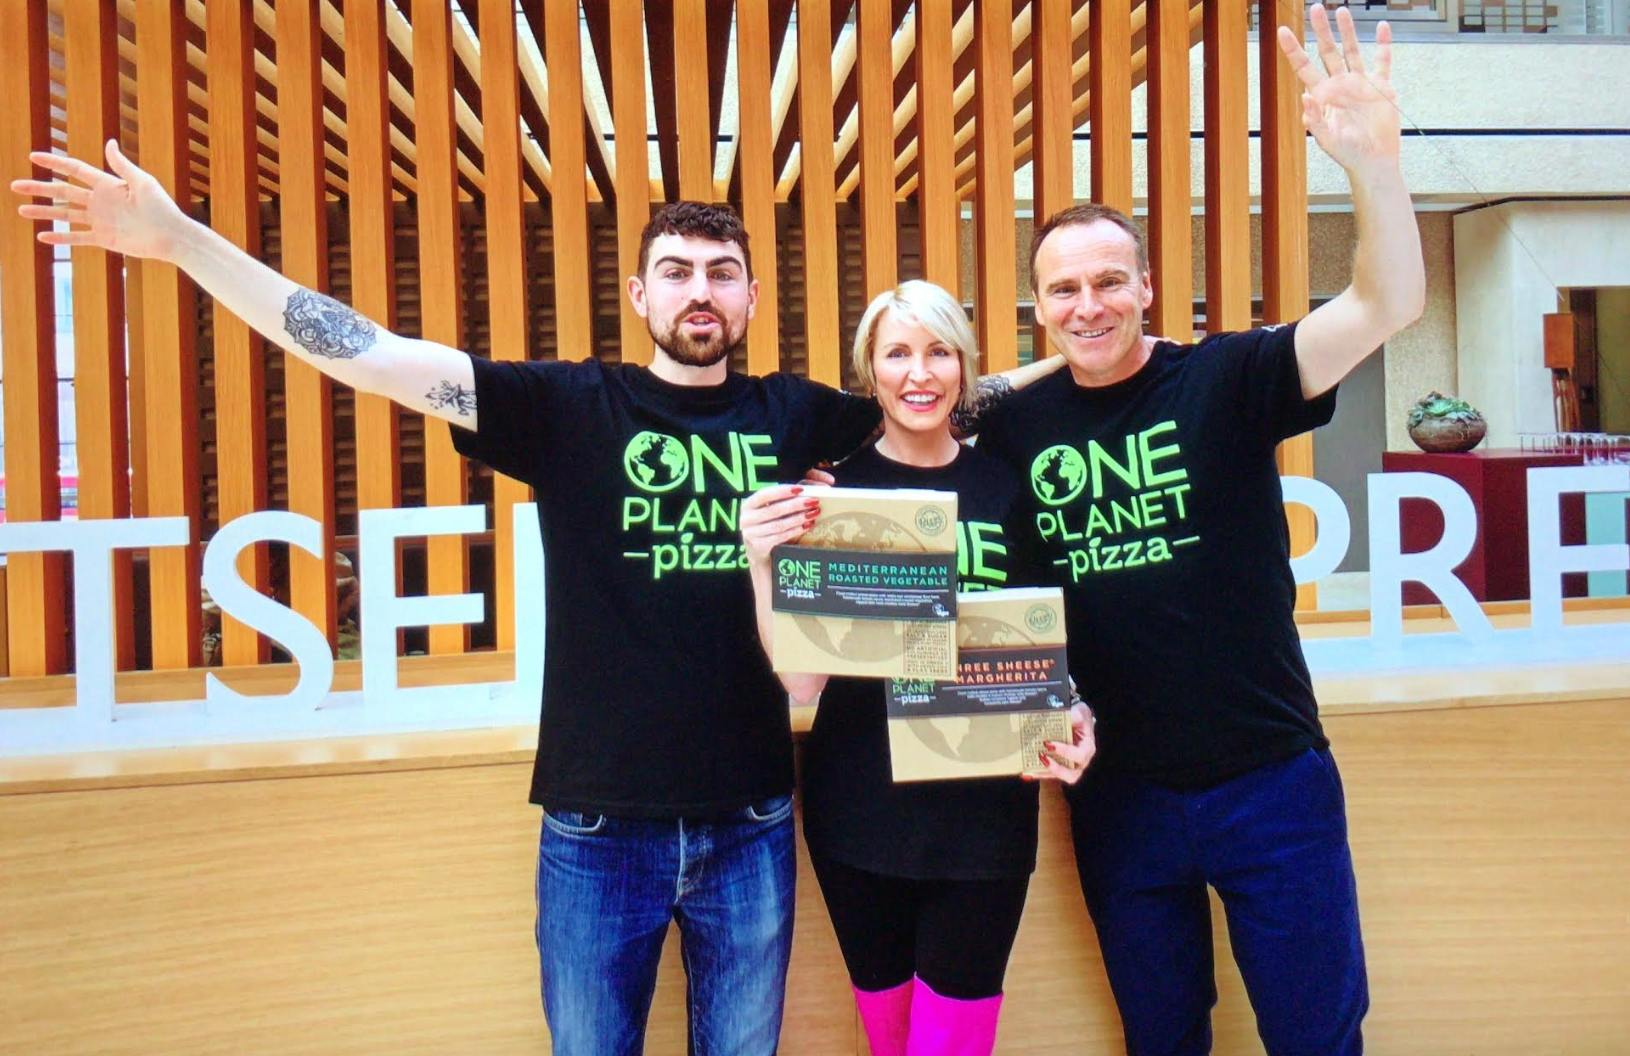 Heather Mills and One Planet Pizza